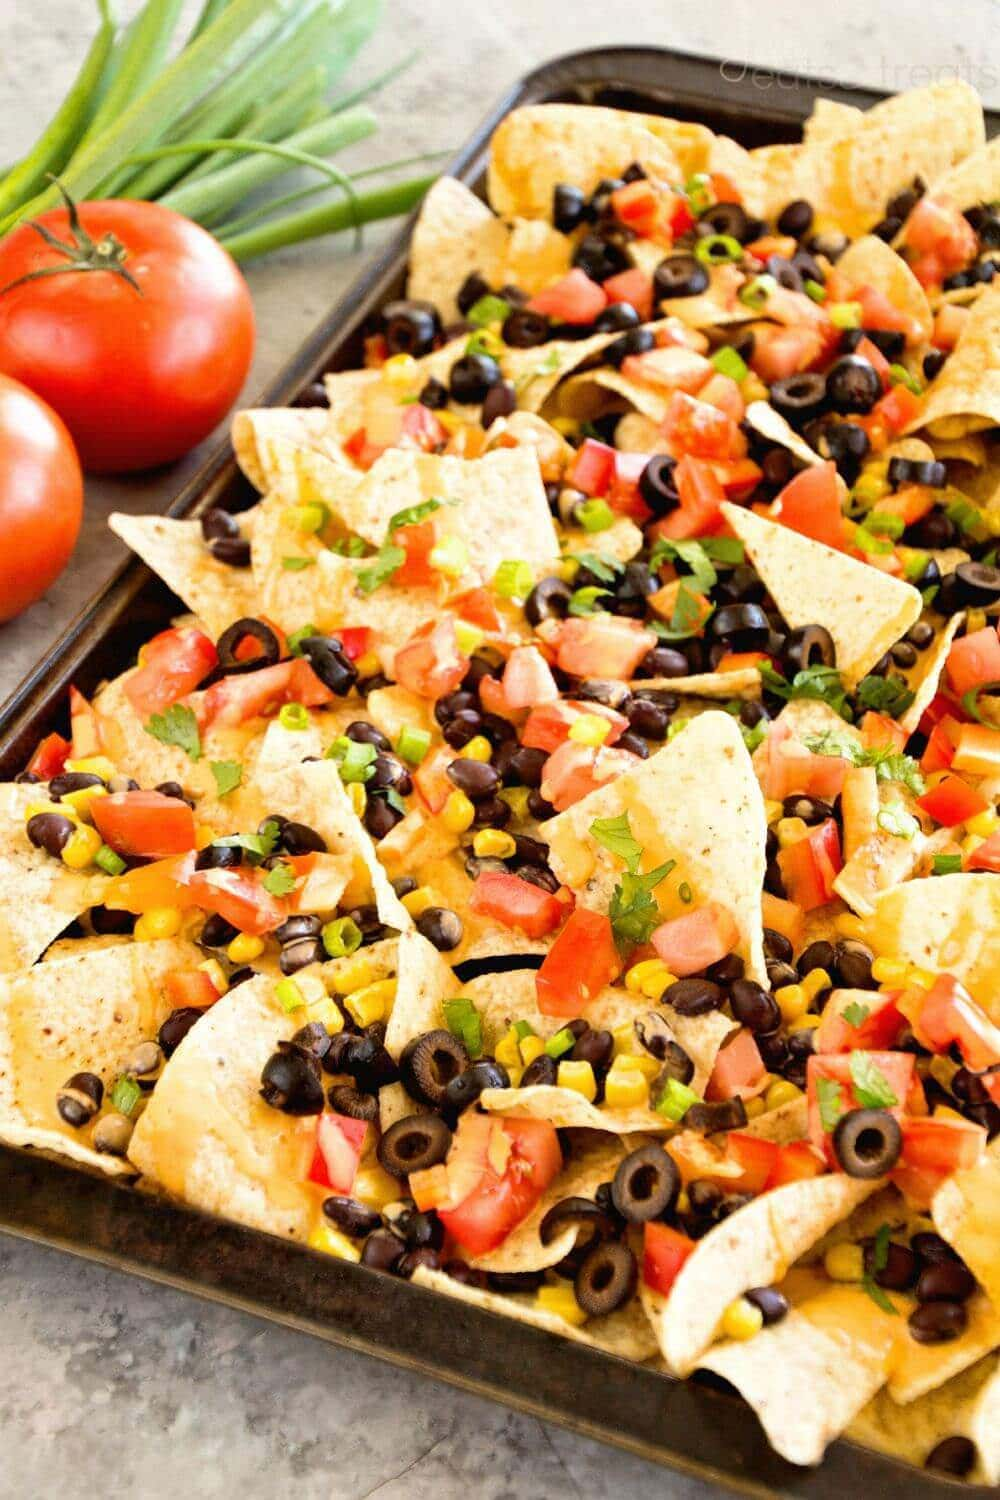 Southwestern Nachos with Chipotle Sauce ~ Tortilla Chips Loaded with Corn, Black Beans, Red Pepper, Tomatoes, Black Olives, Cilantro and Green Olives! Topped off with a spicy Chipotle Sauce! The perfect Vegetarian Appetizer!